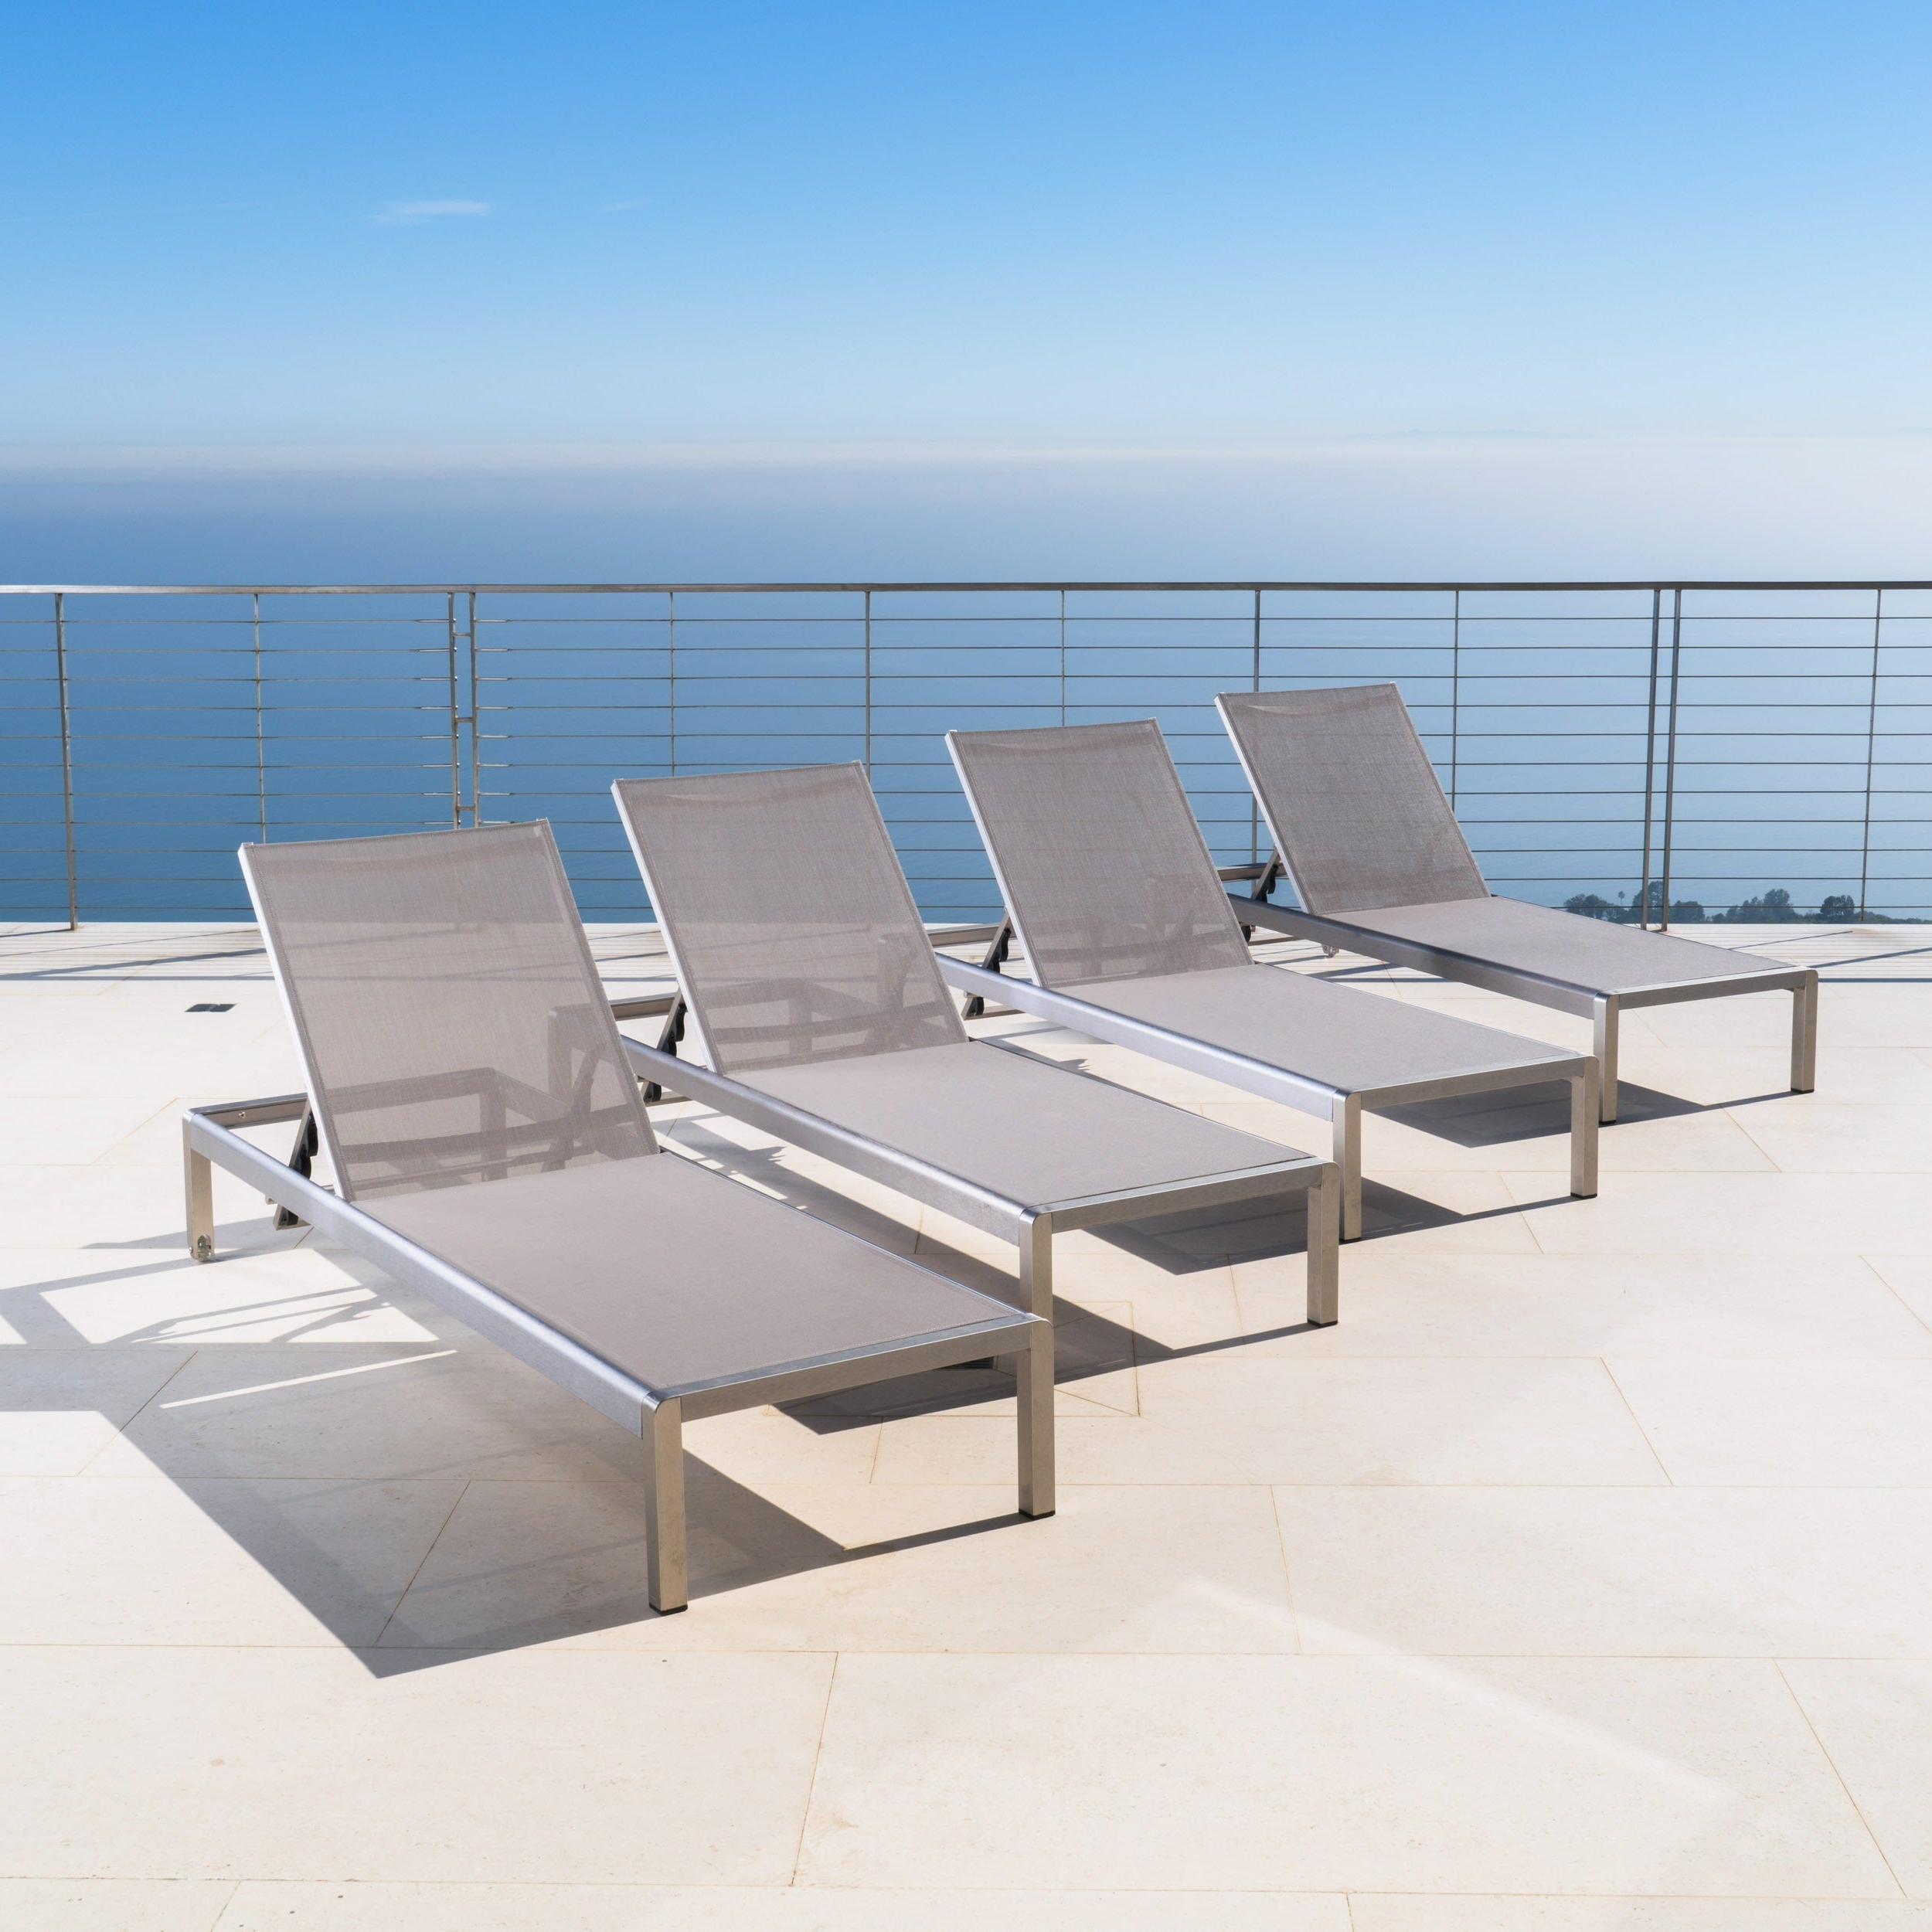 Well Known Cape Coral Outdoor Aluminum Adjustable Chaise Lounge (Set Of 4) Christopher Knight Home In Outdoor Aluminum Adjustable Chaise Lounges (View 6 of 25)